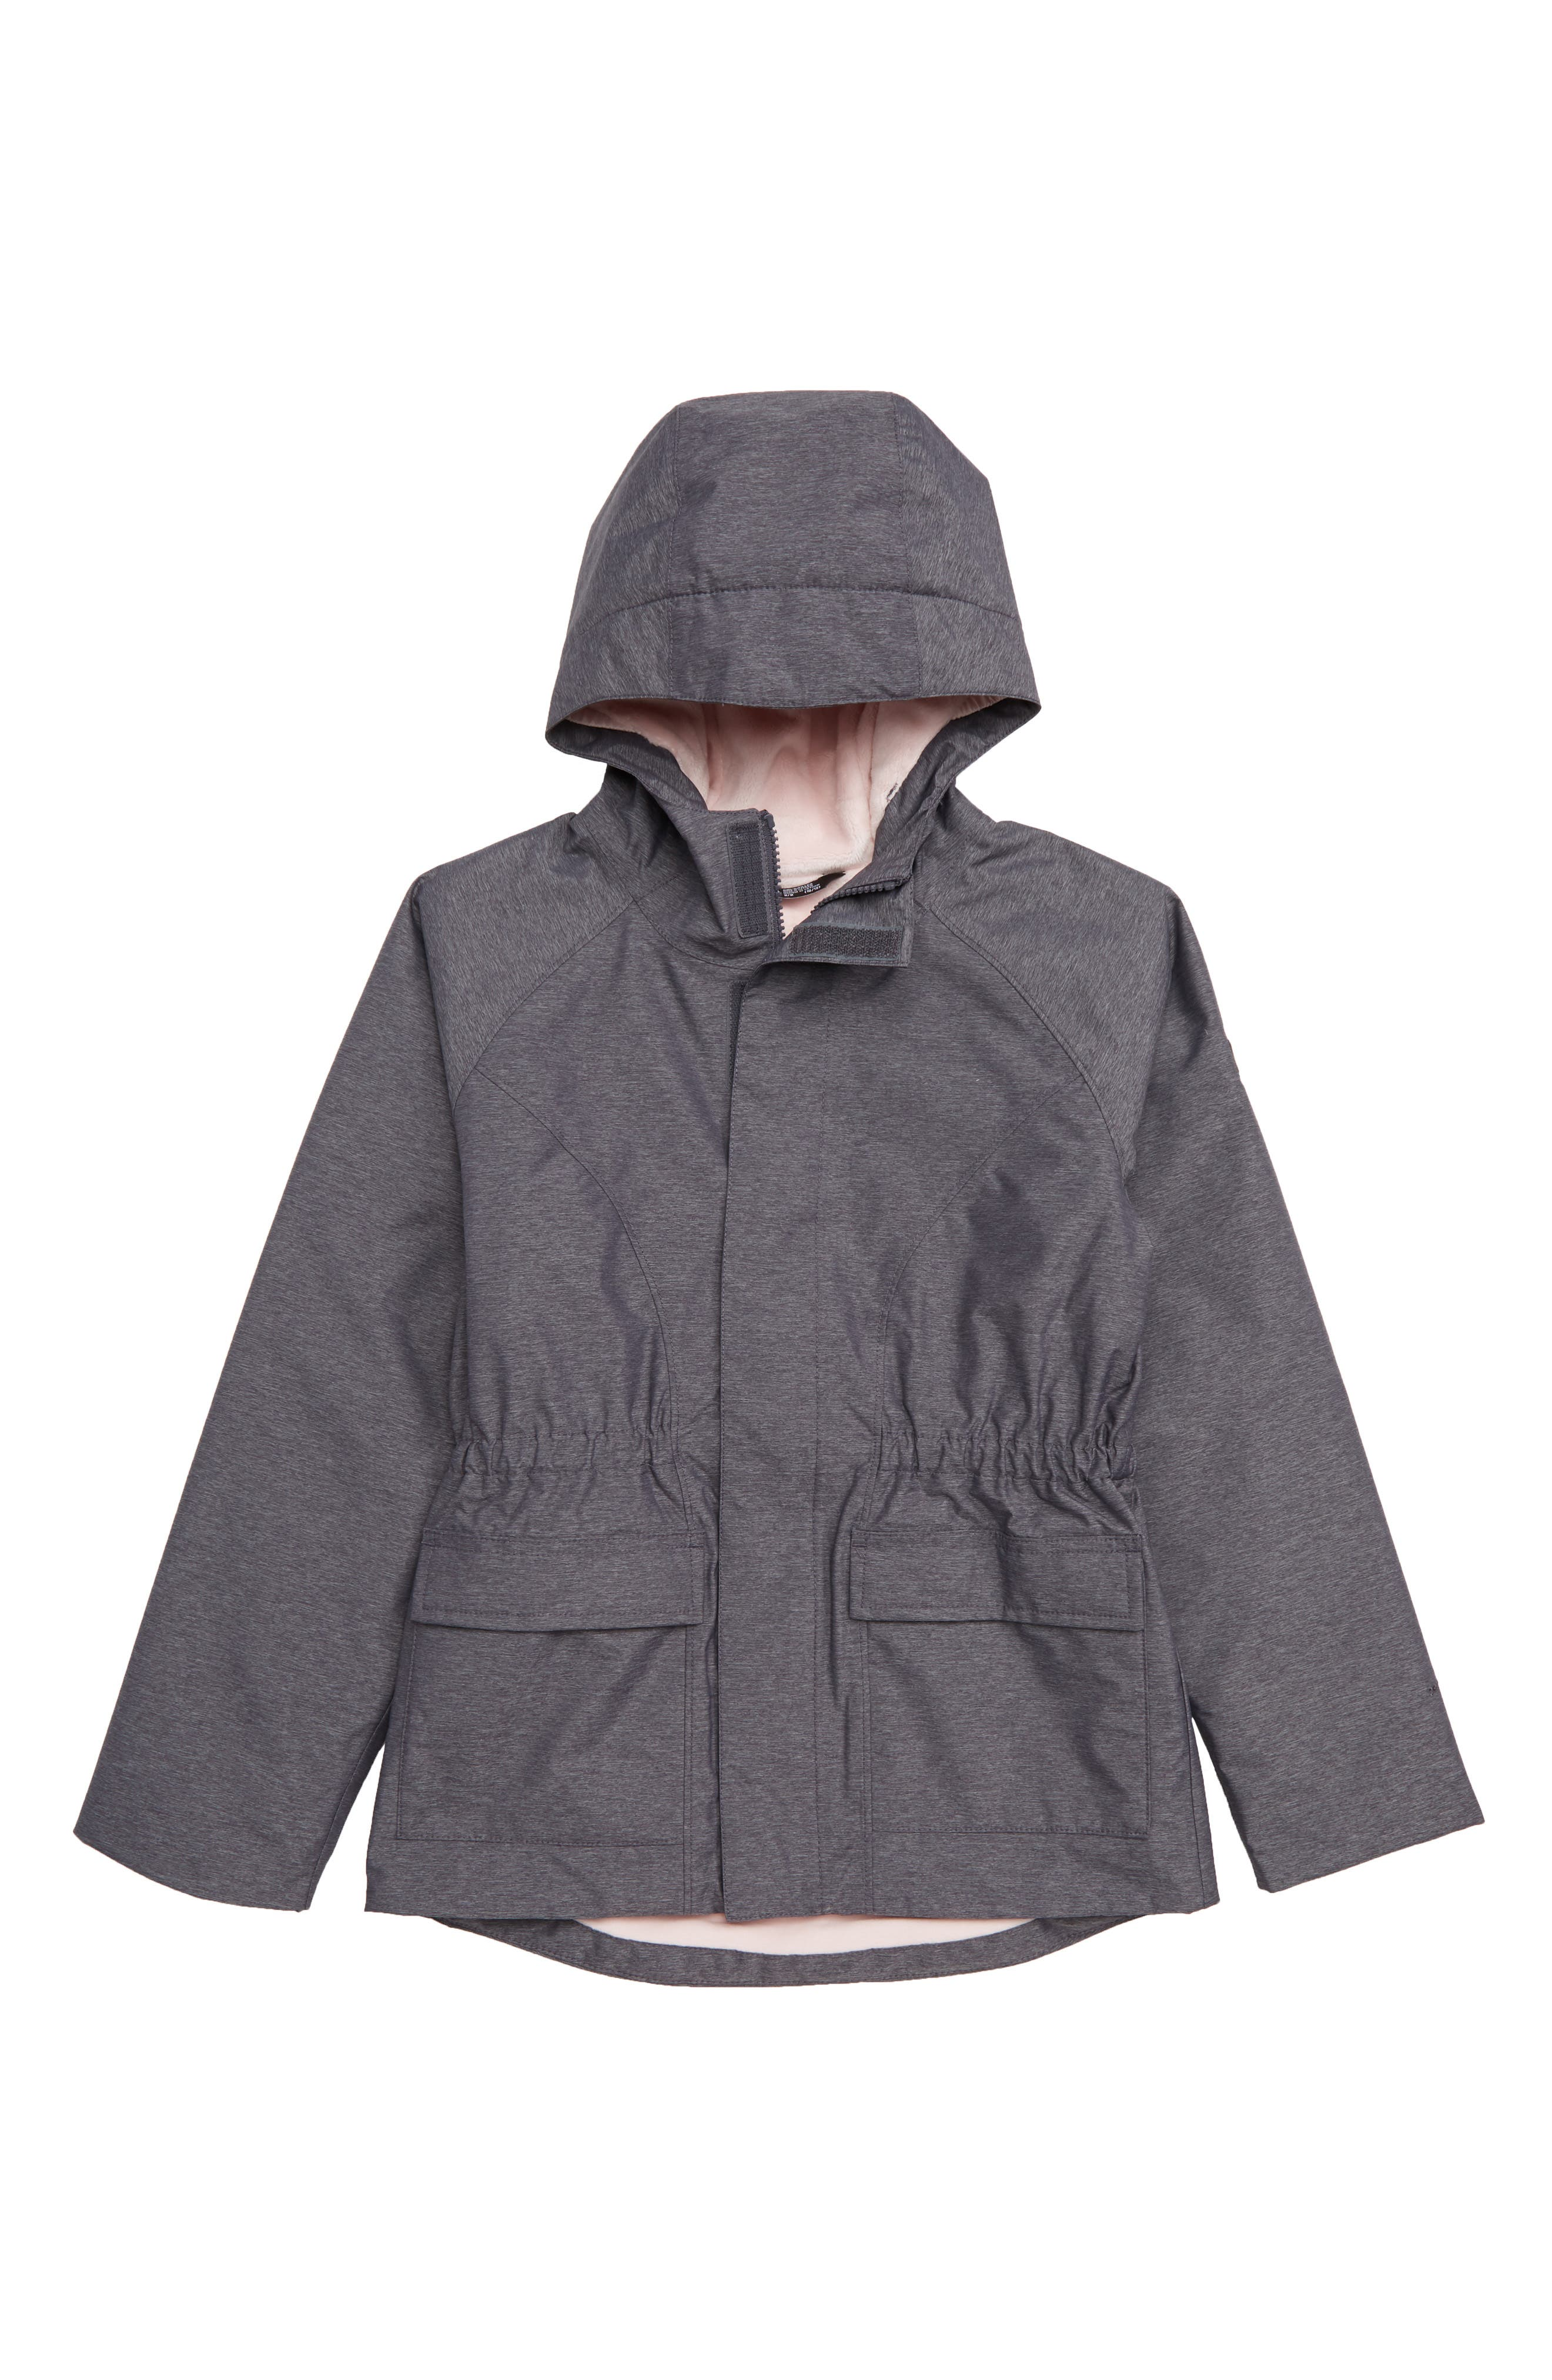 THE NORTH FACE, Warm Sophie Hooded Rain Parka, Main thumbnail 1, color, PERISCOPE GREY HEATHER